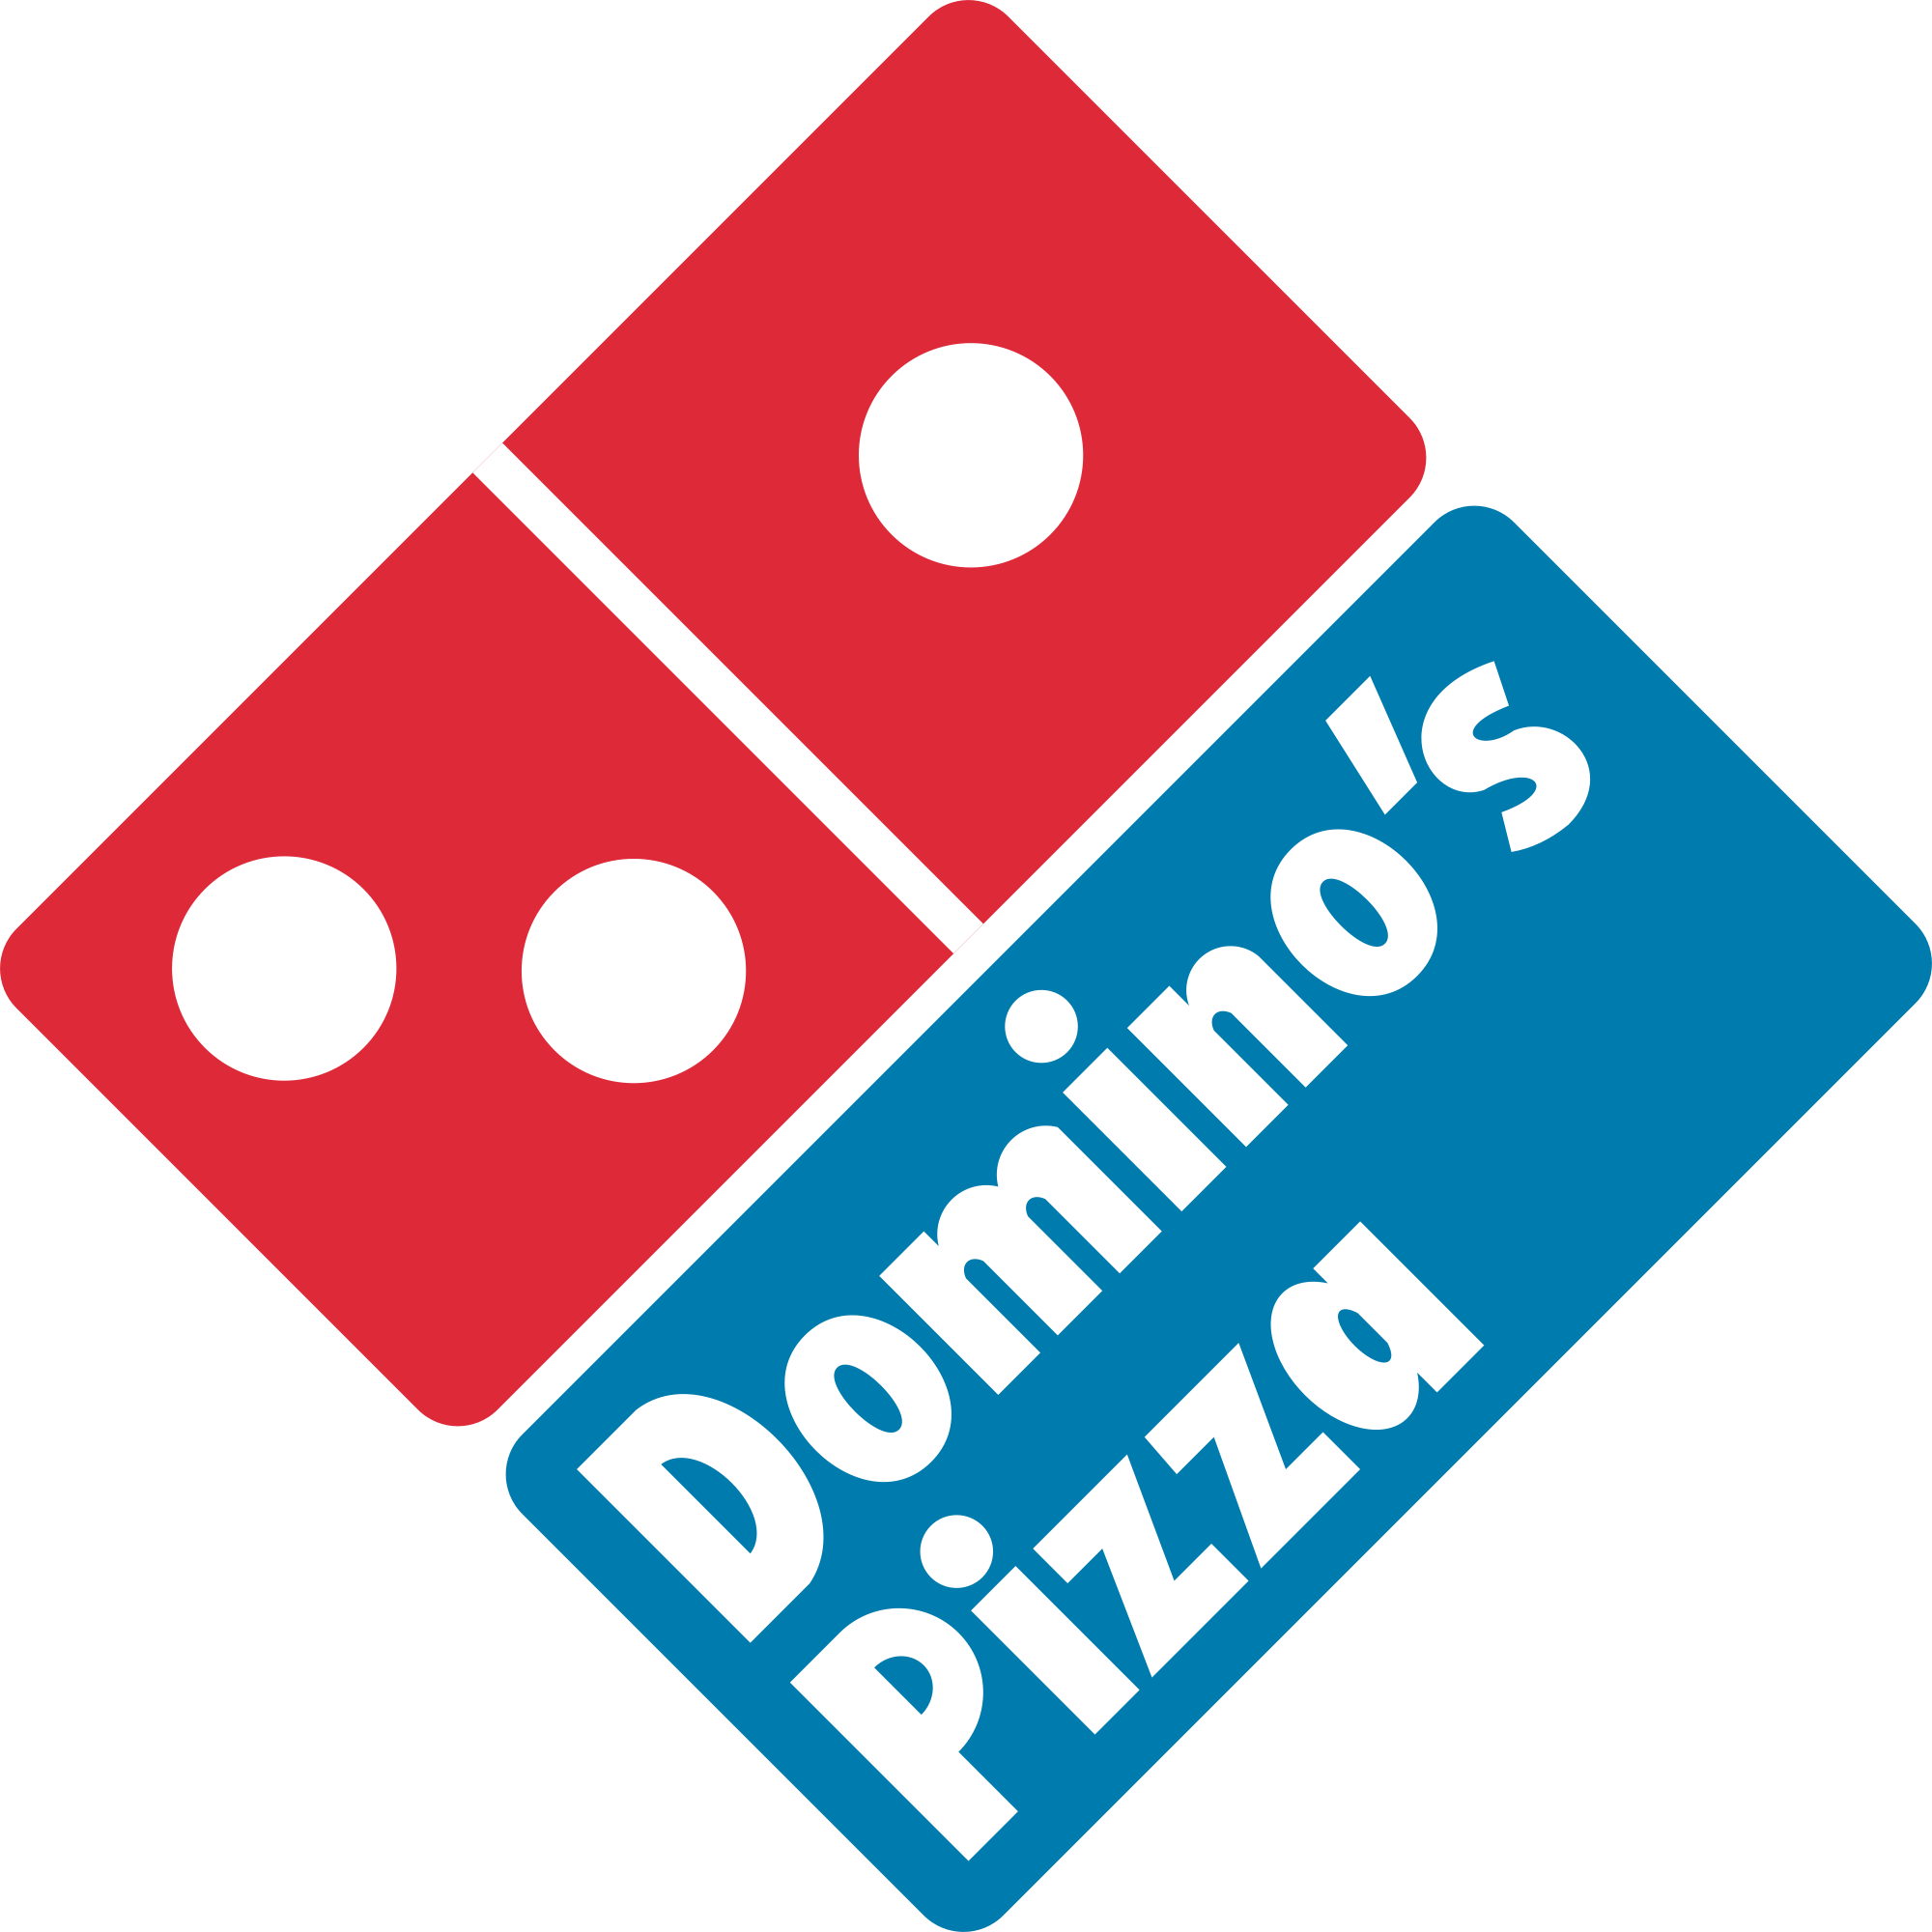 Domino's pizza png. Domino s logo transparent